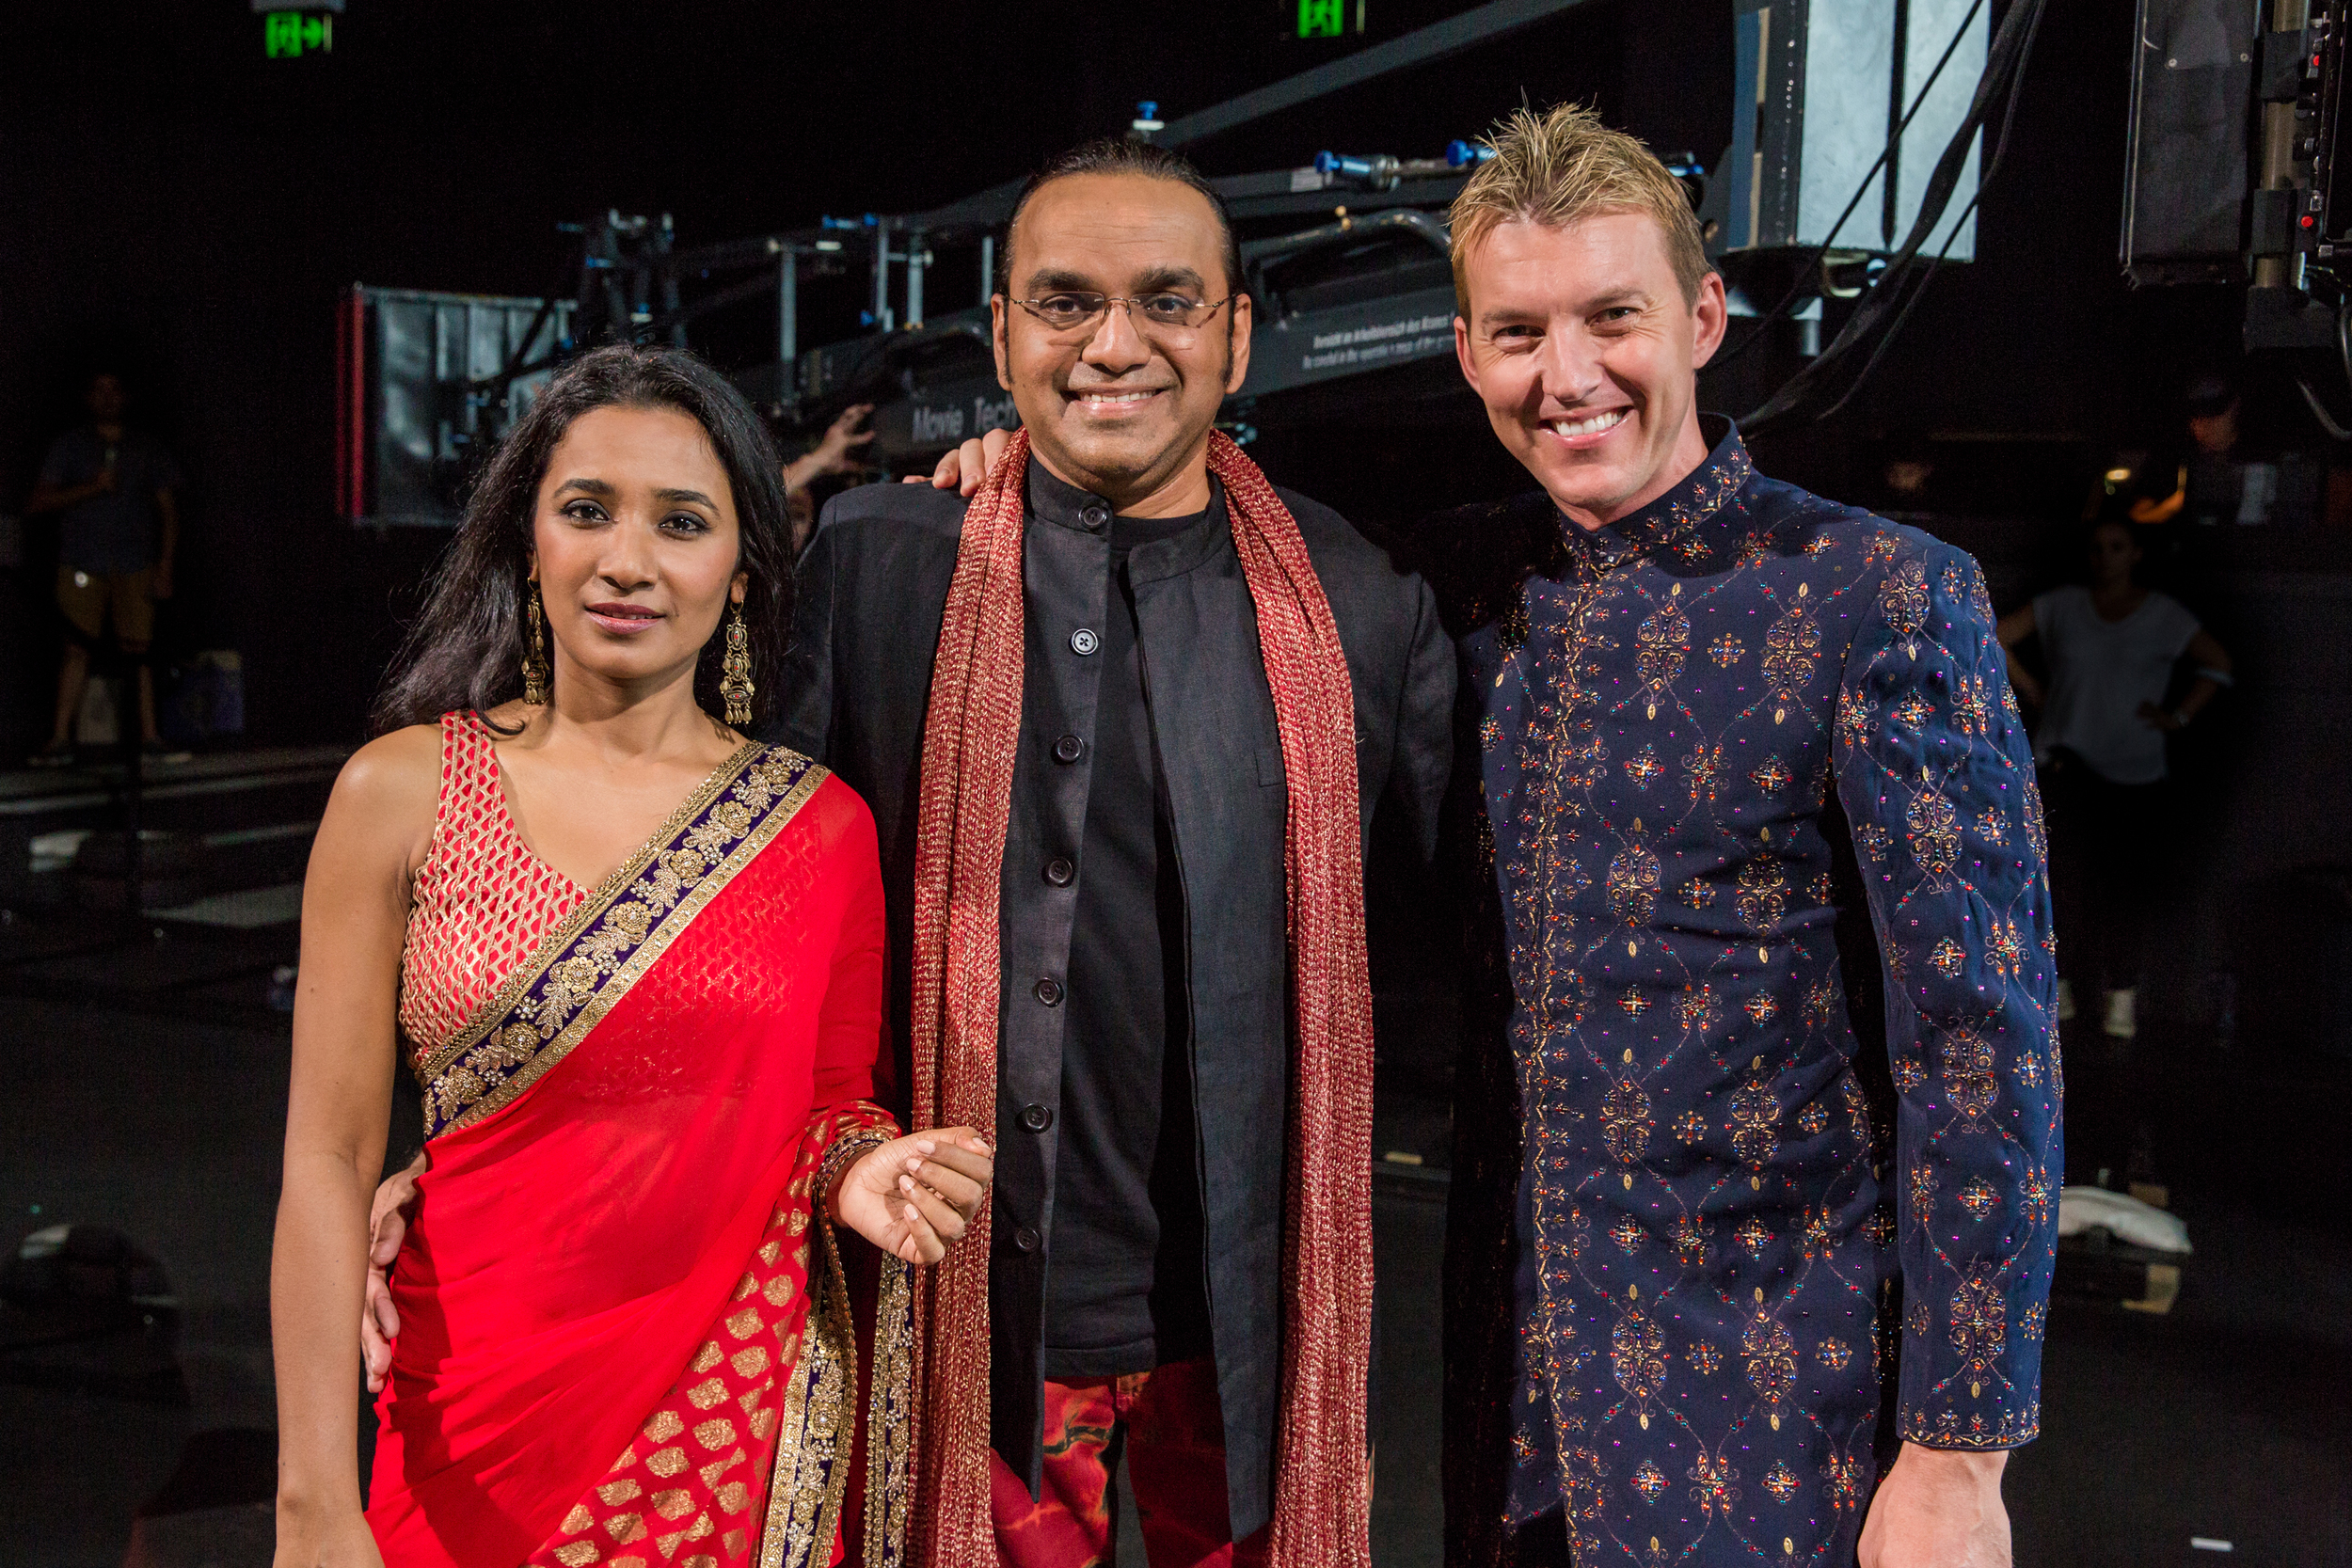 Brett Lee as Will, with producer director Anupam Sharma with Tannishtha Chatterjee as Meera. Photo by Kate Ryan.